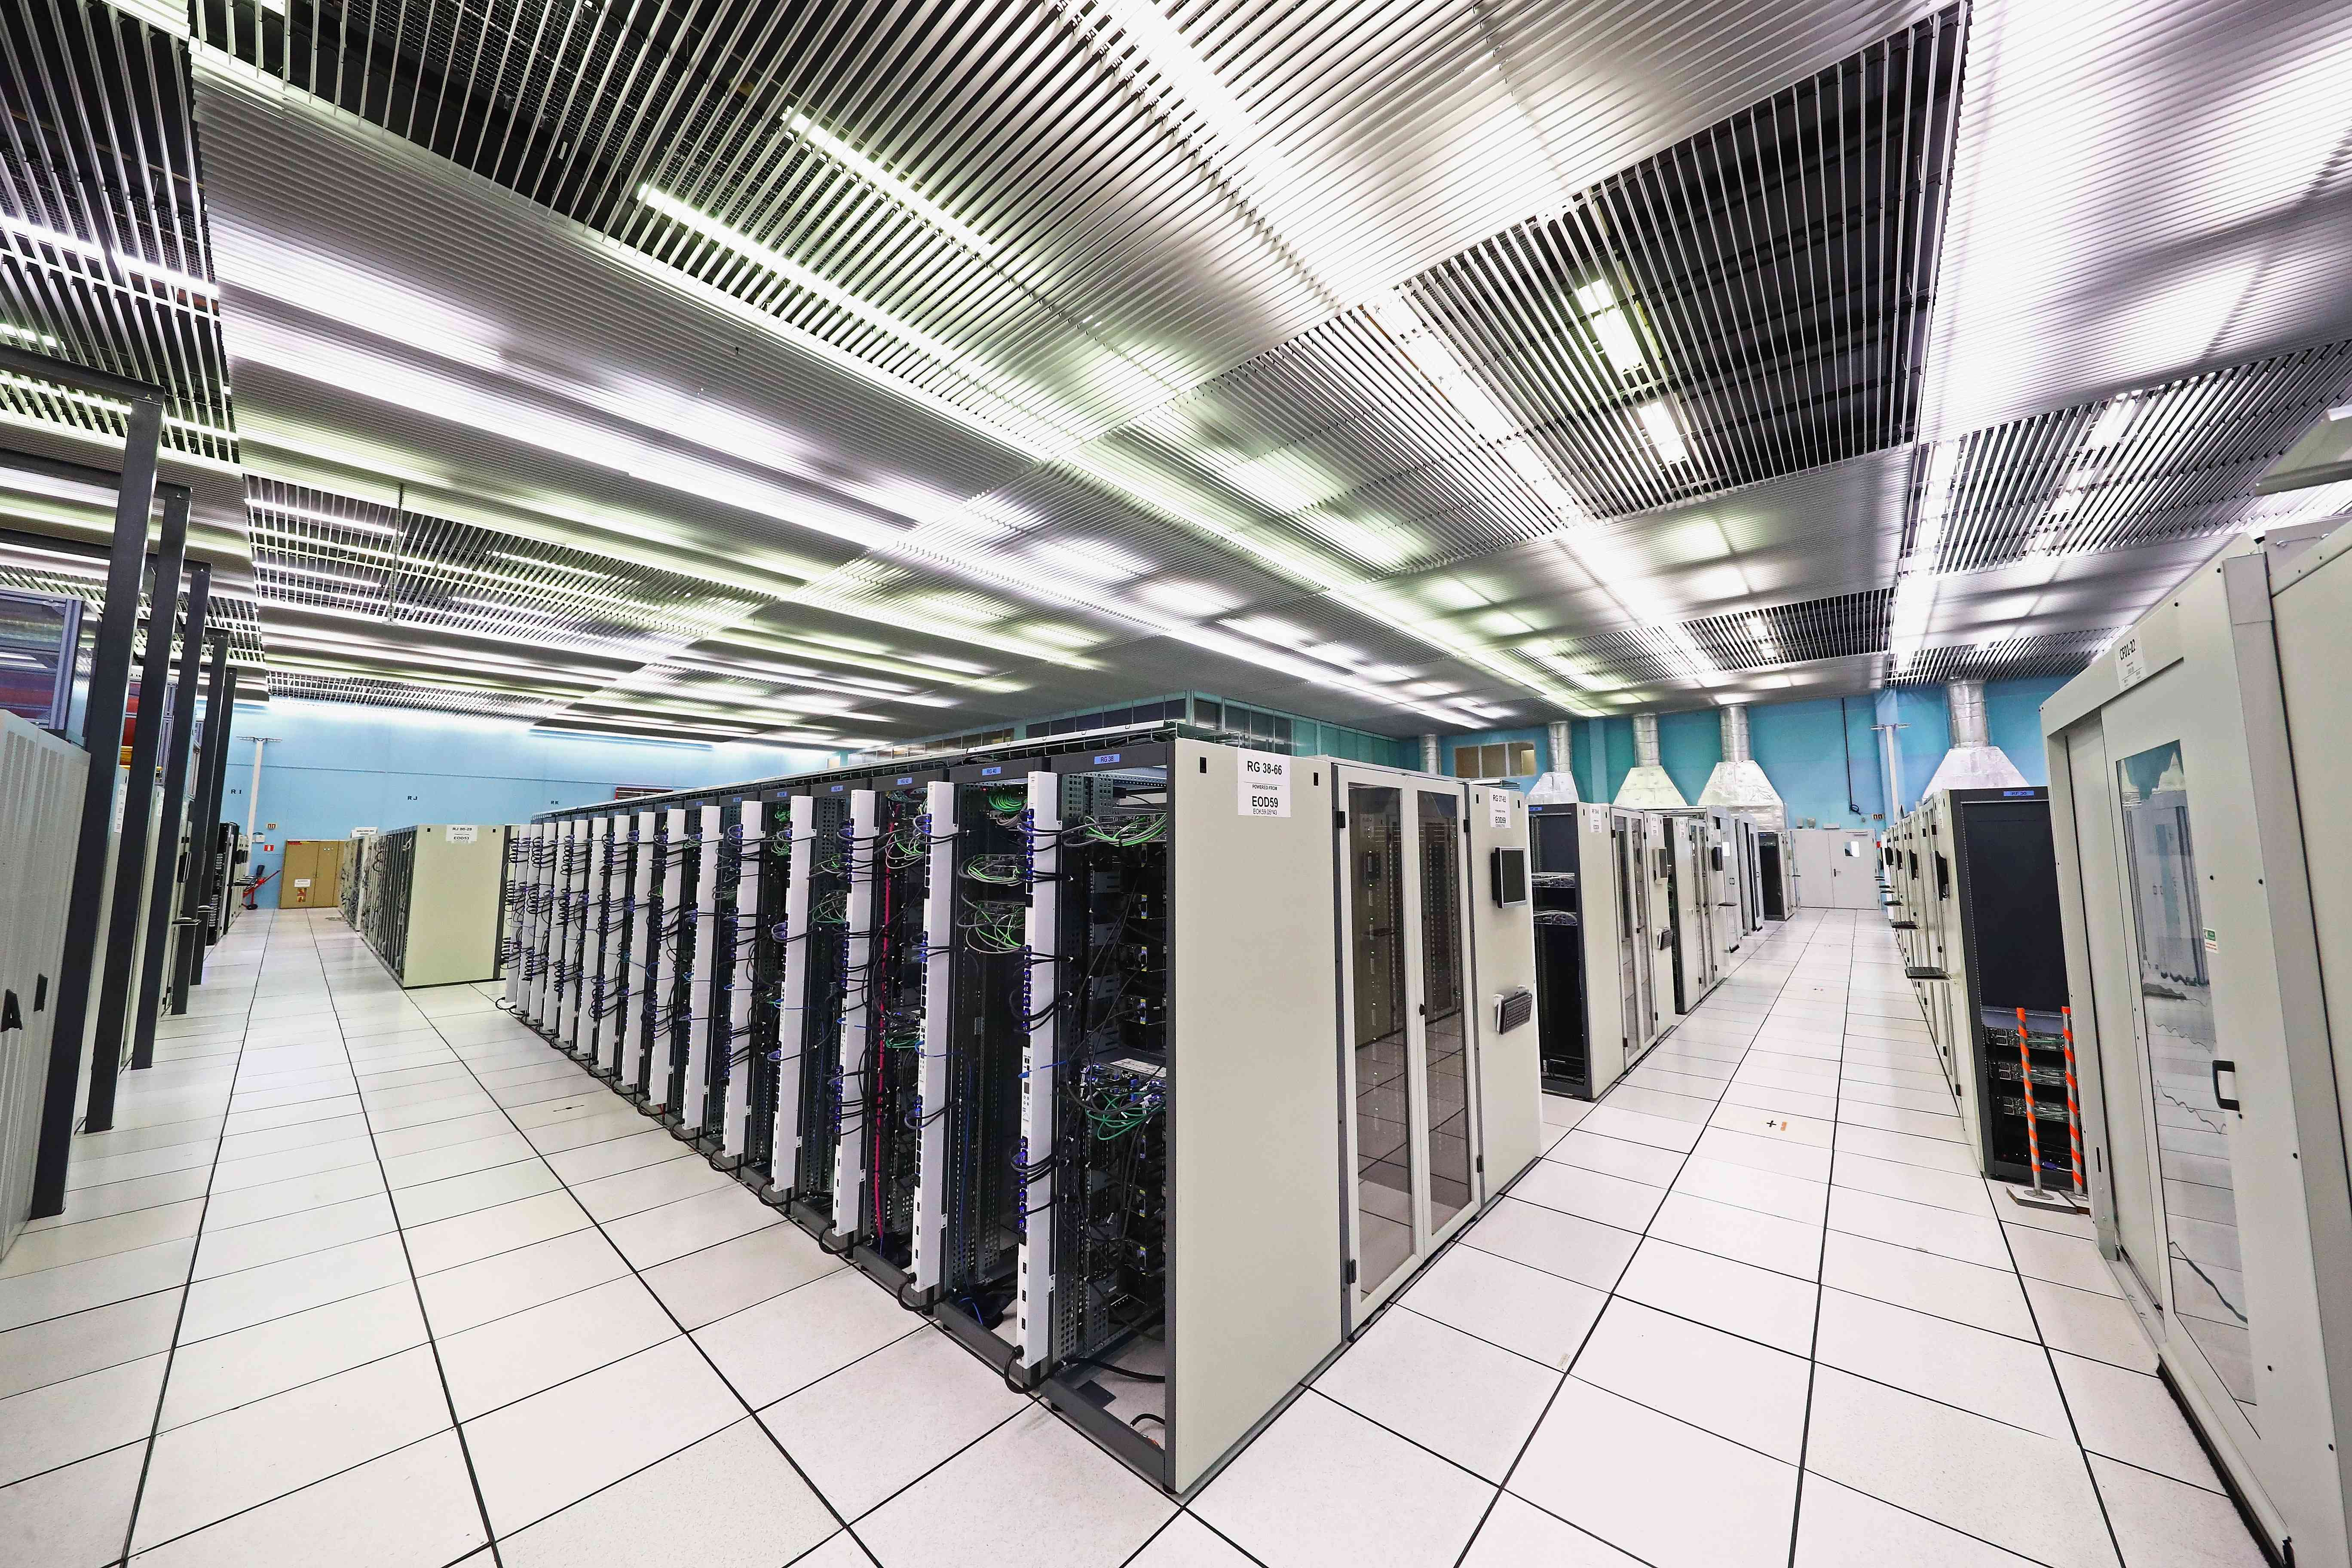 server farm at CERN, data server usage globally is being offset by increases in efficiencies.